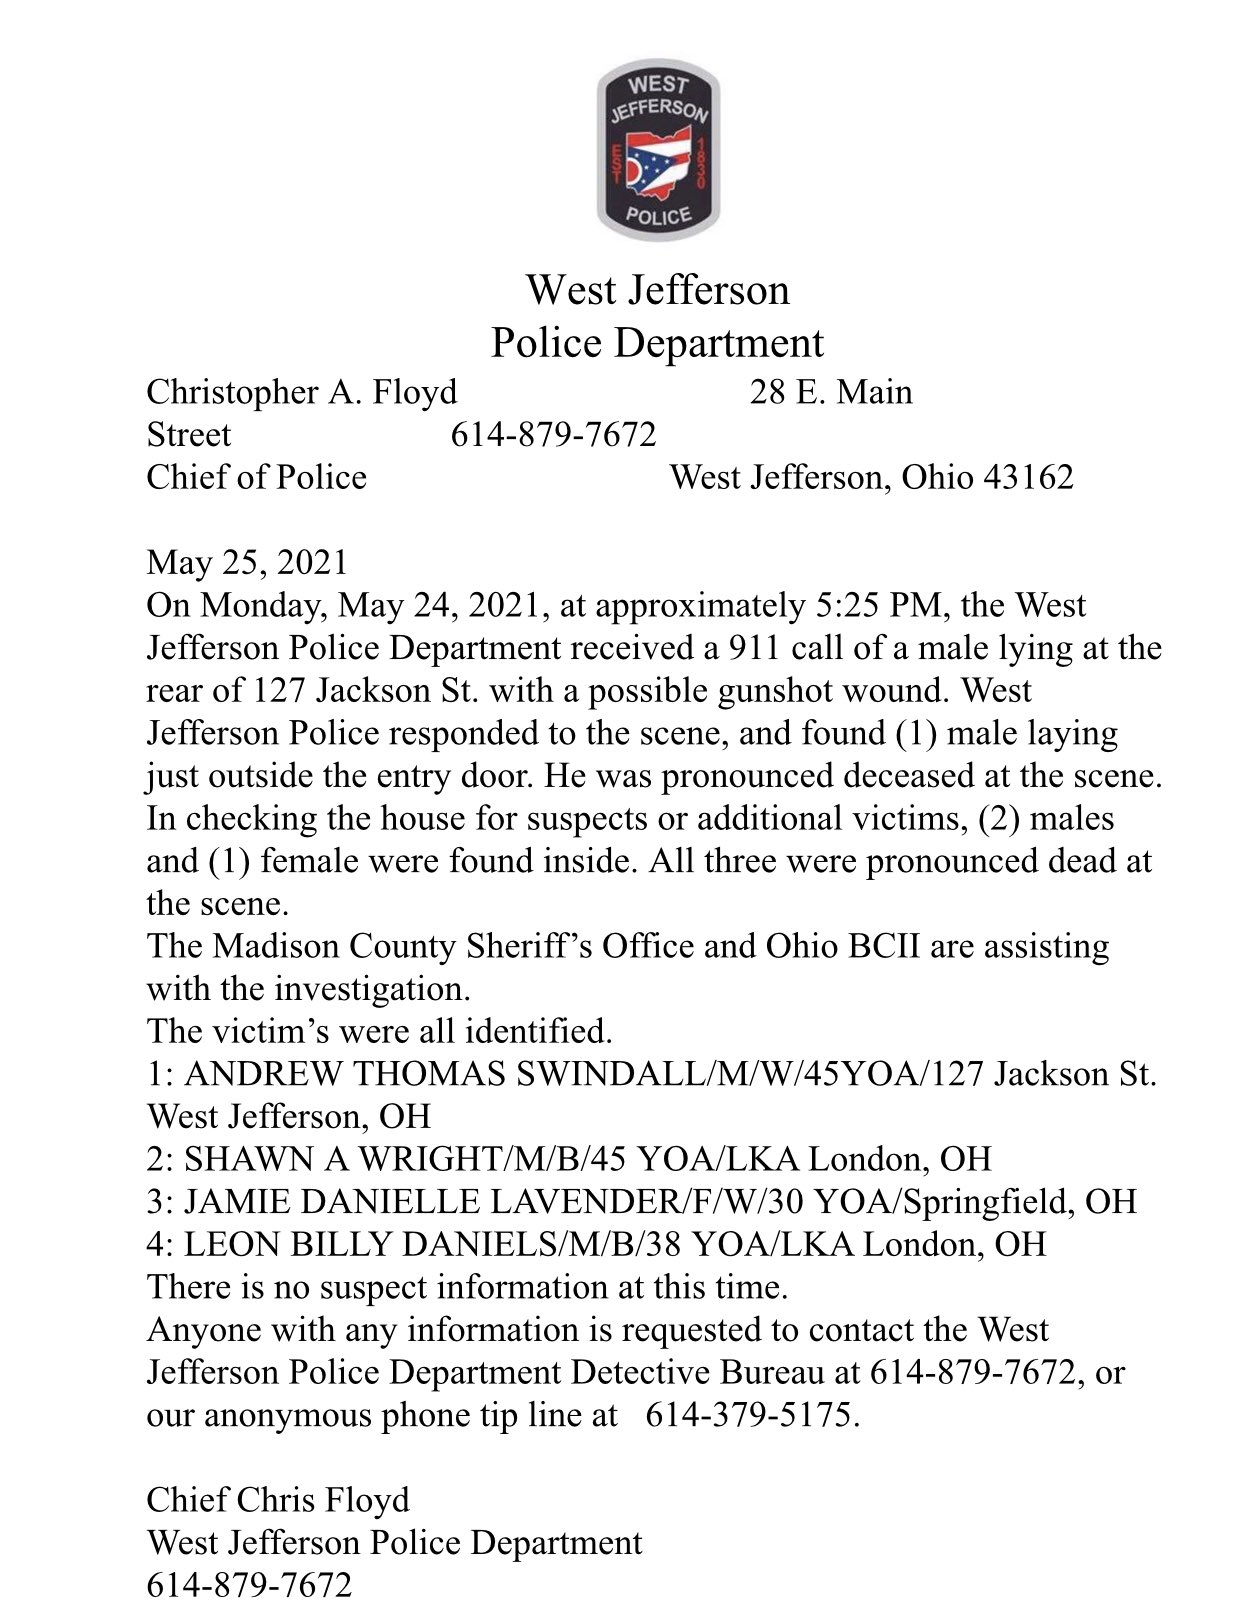 A statement of the incident from the West Jefferson Police Department. | Photo: Twitter/stevewsyx6